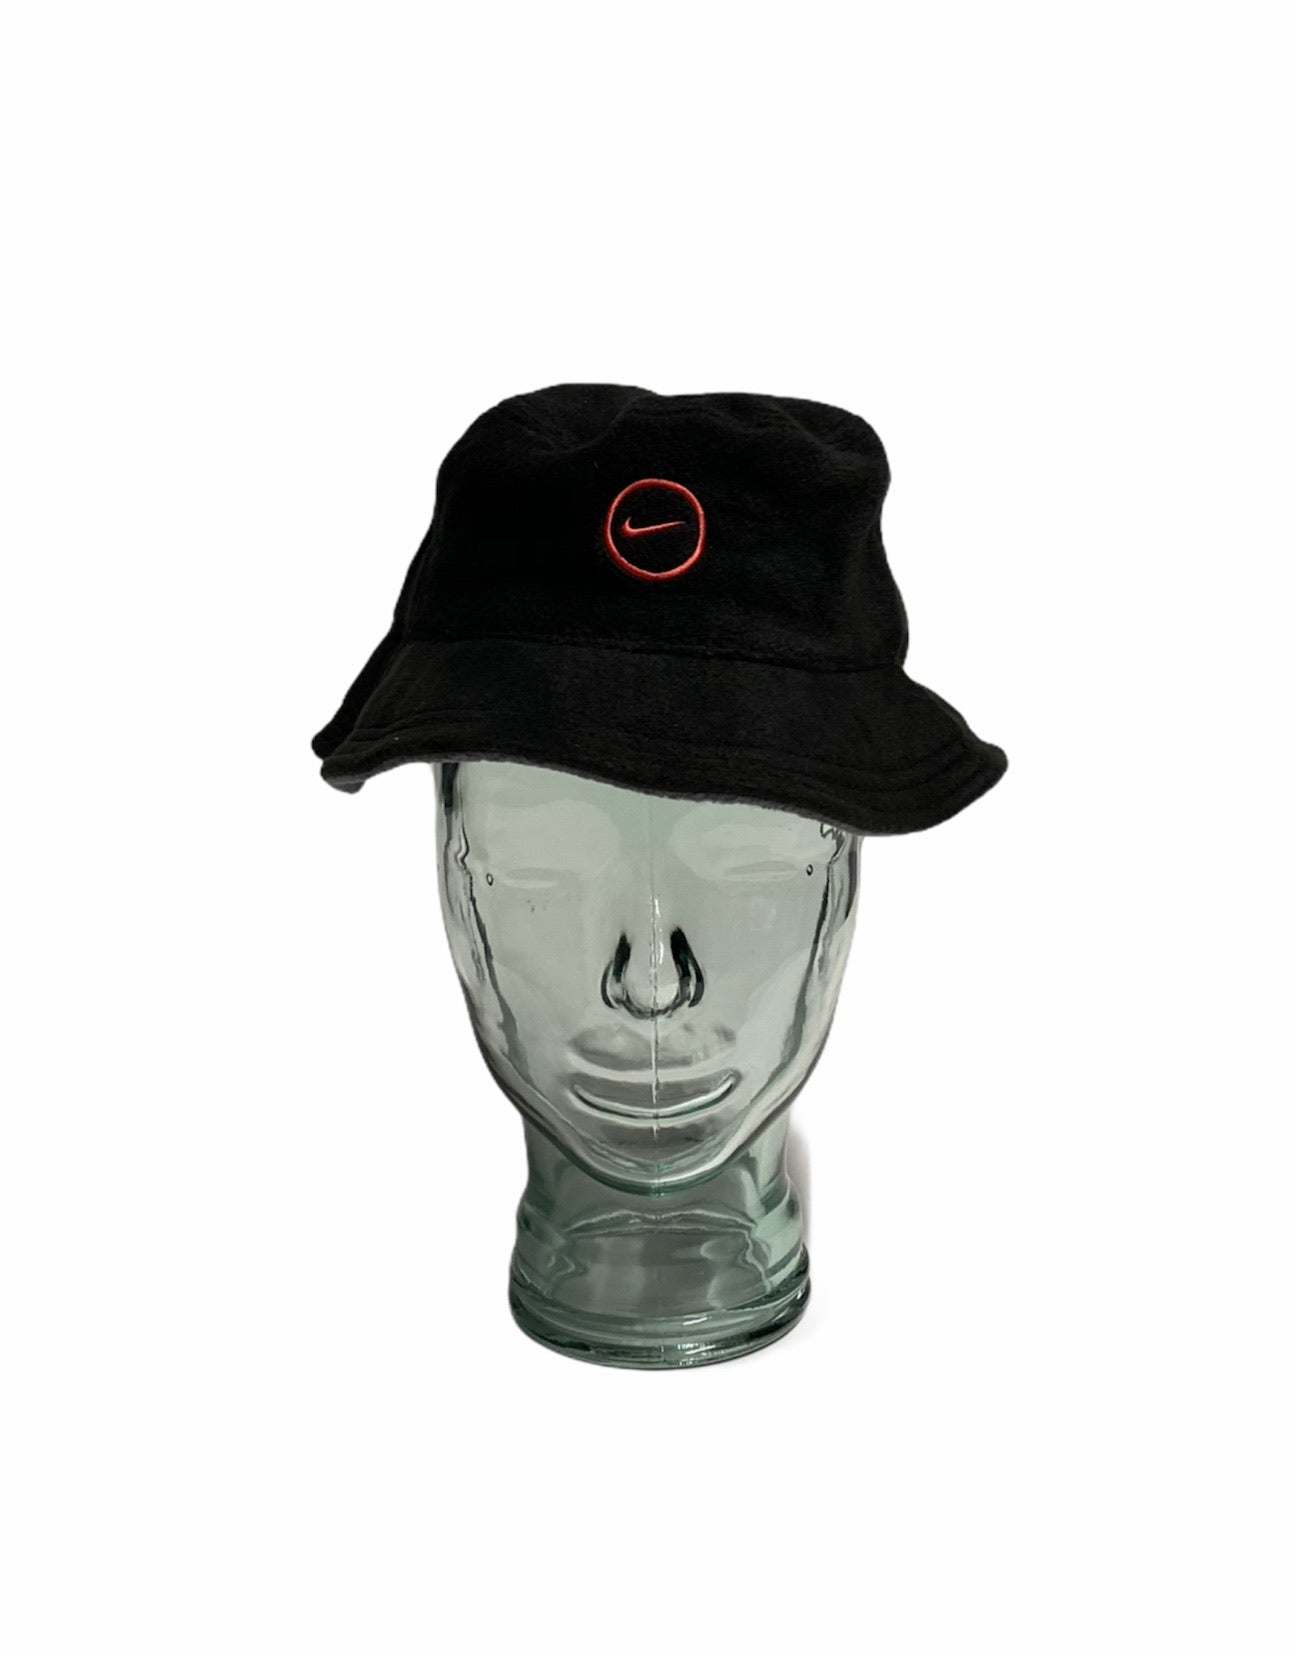 Early 2000's Nike Fleece Bucket Hat in Black